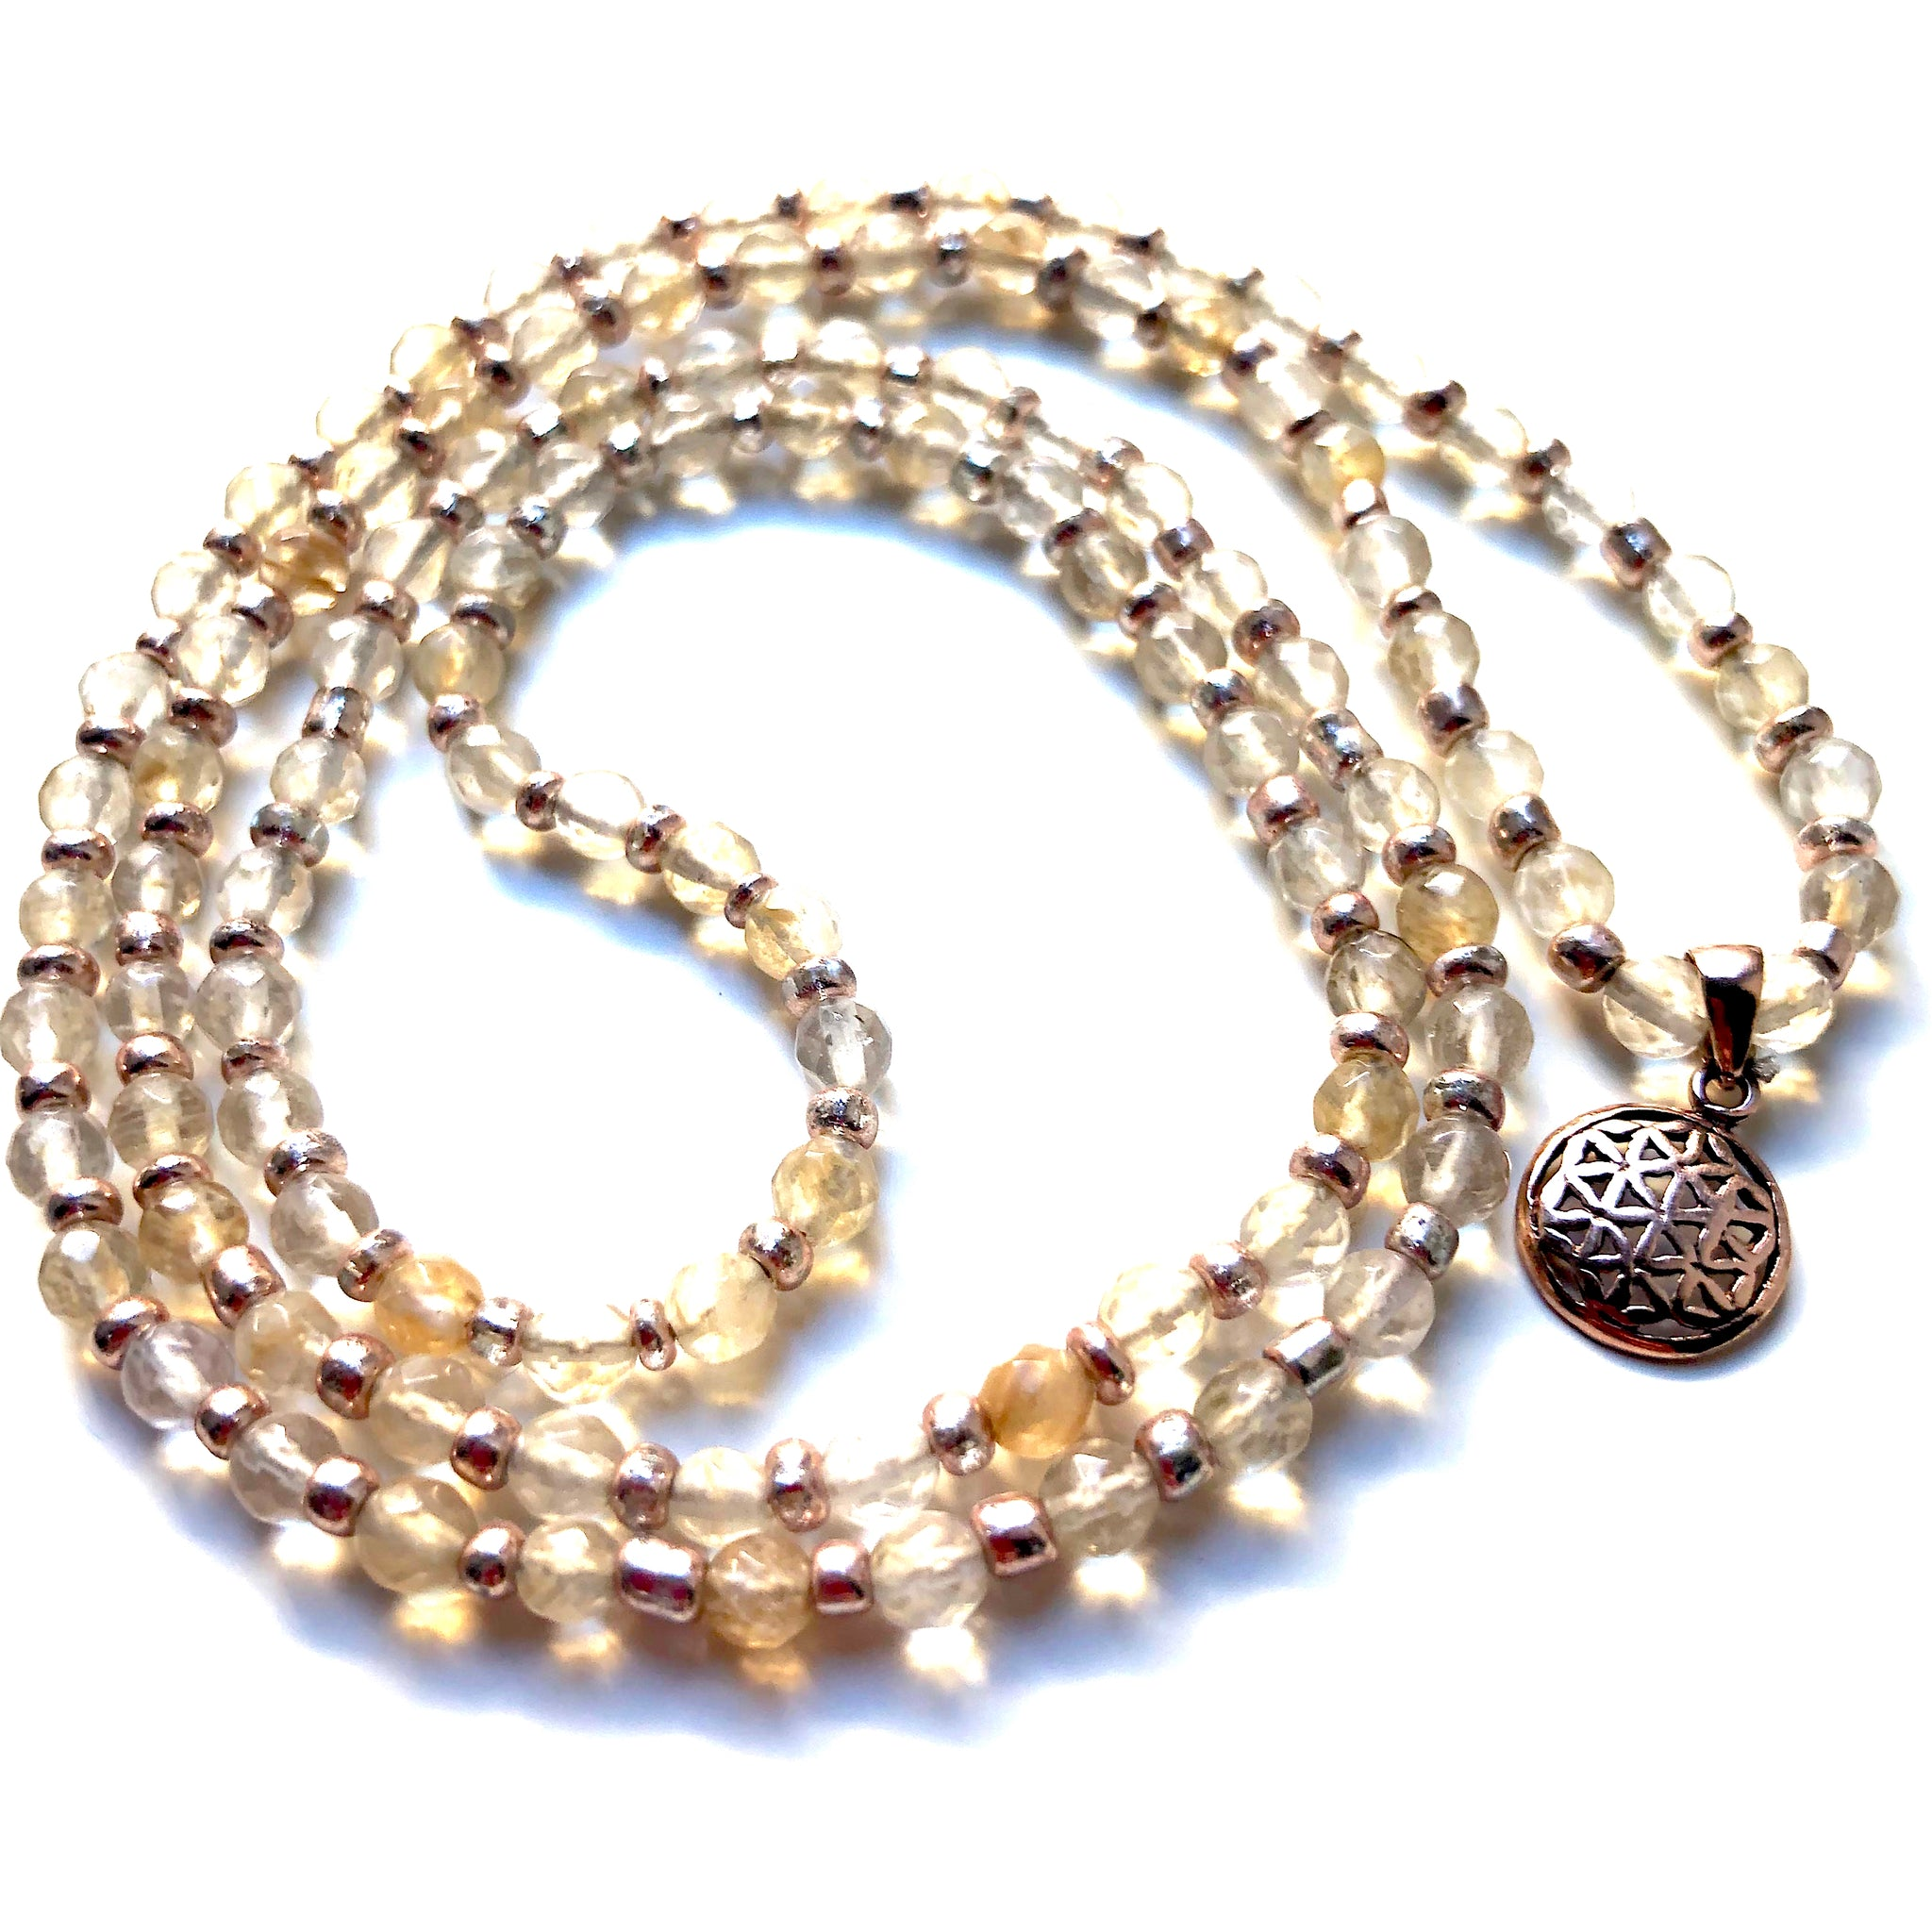 Citrine Mala Beads, 108 Mala, Flower of Life, Mala Necklace, Yoga Jewelry